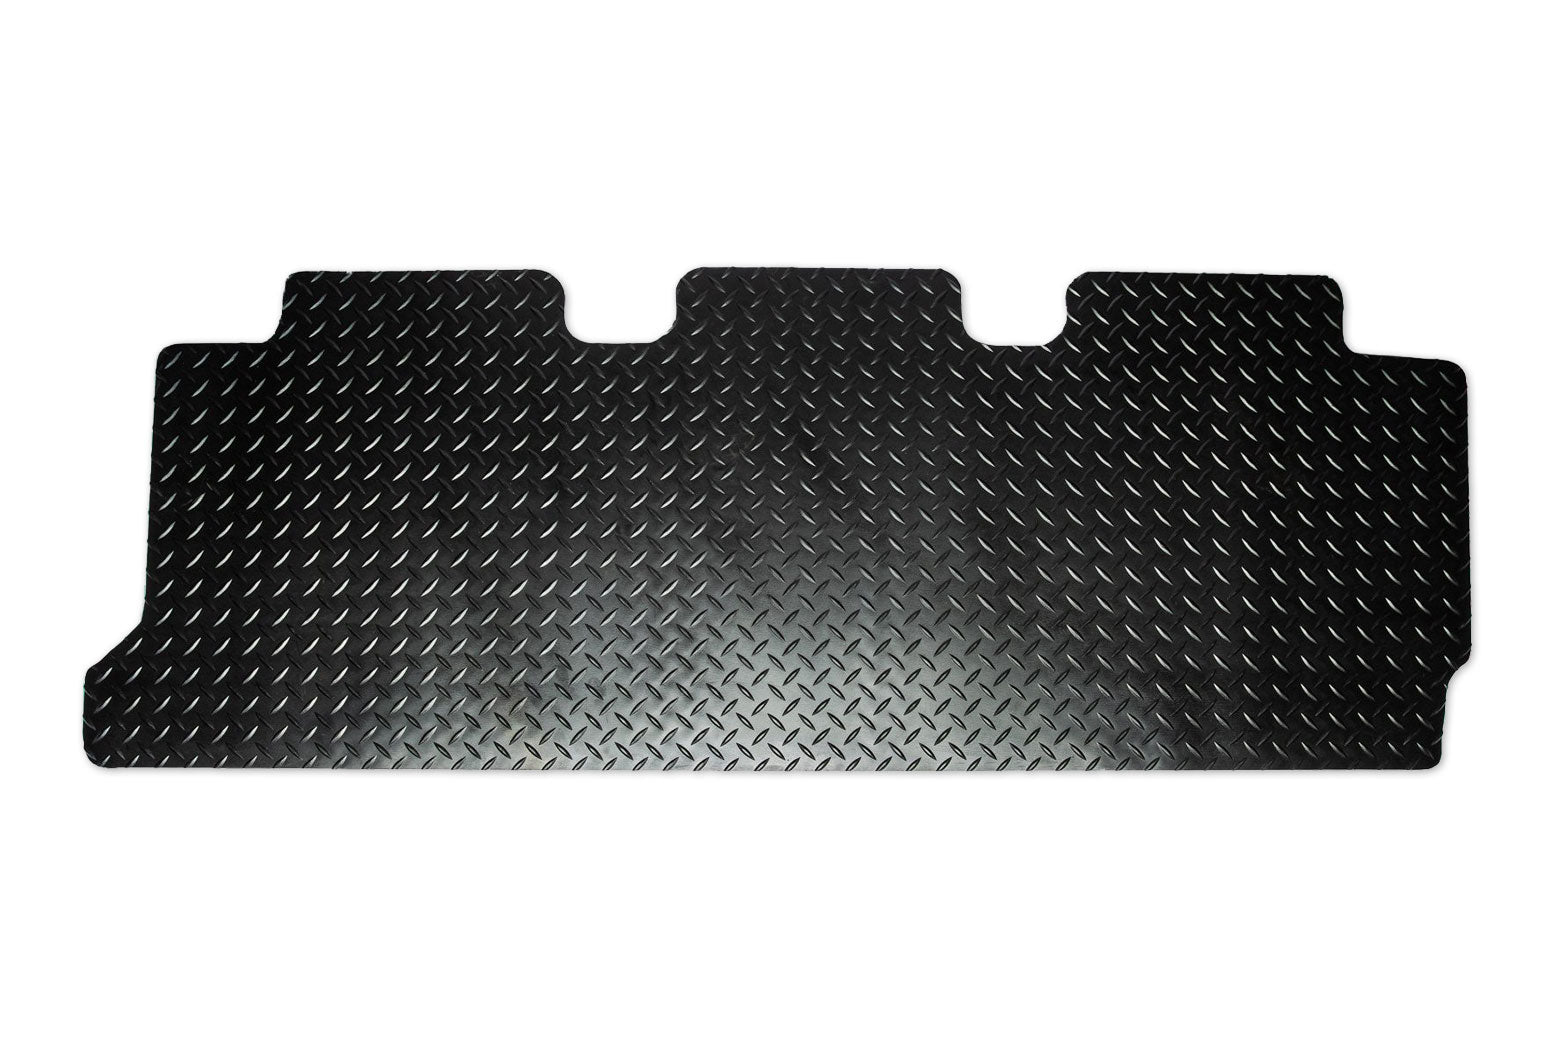 T6 point 1 combi rear mat for triple seat with double slider doors shown in black tread plate rubber